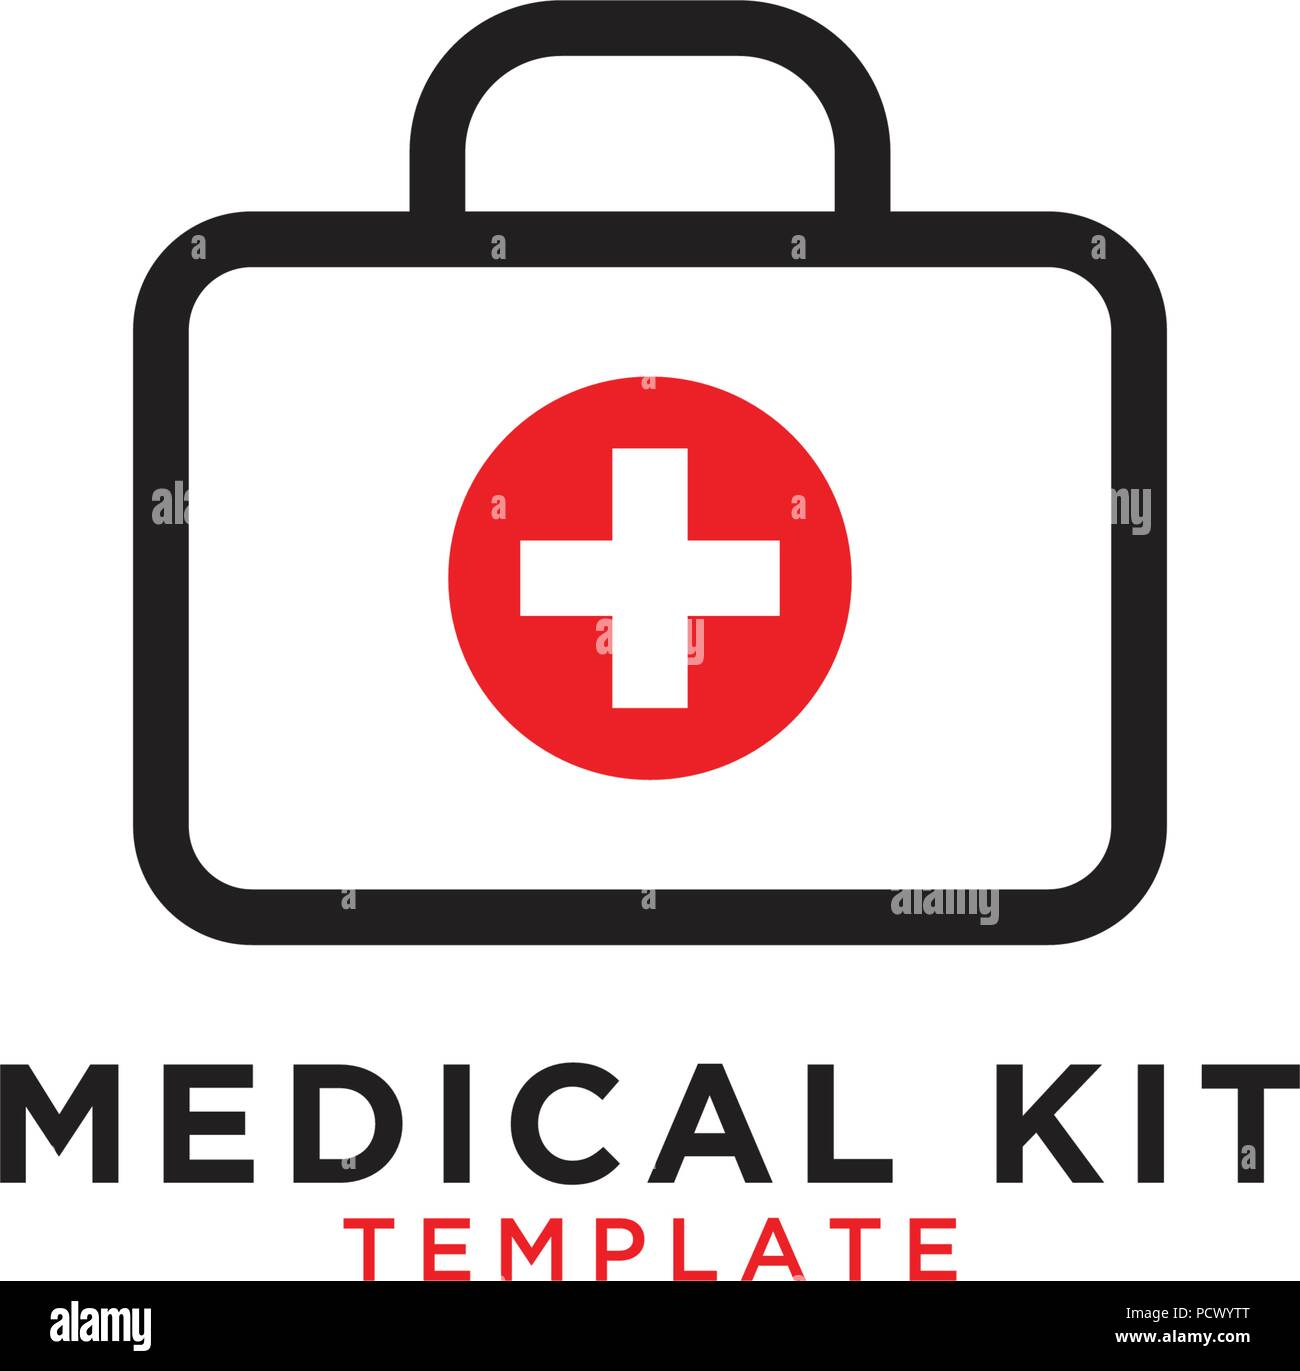 Medical first aid kit graphic design template stock vector art medical first aid kit graphic design template maxwellsz